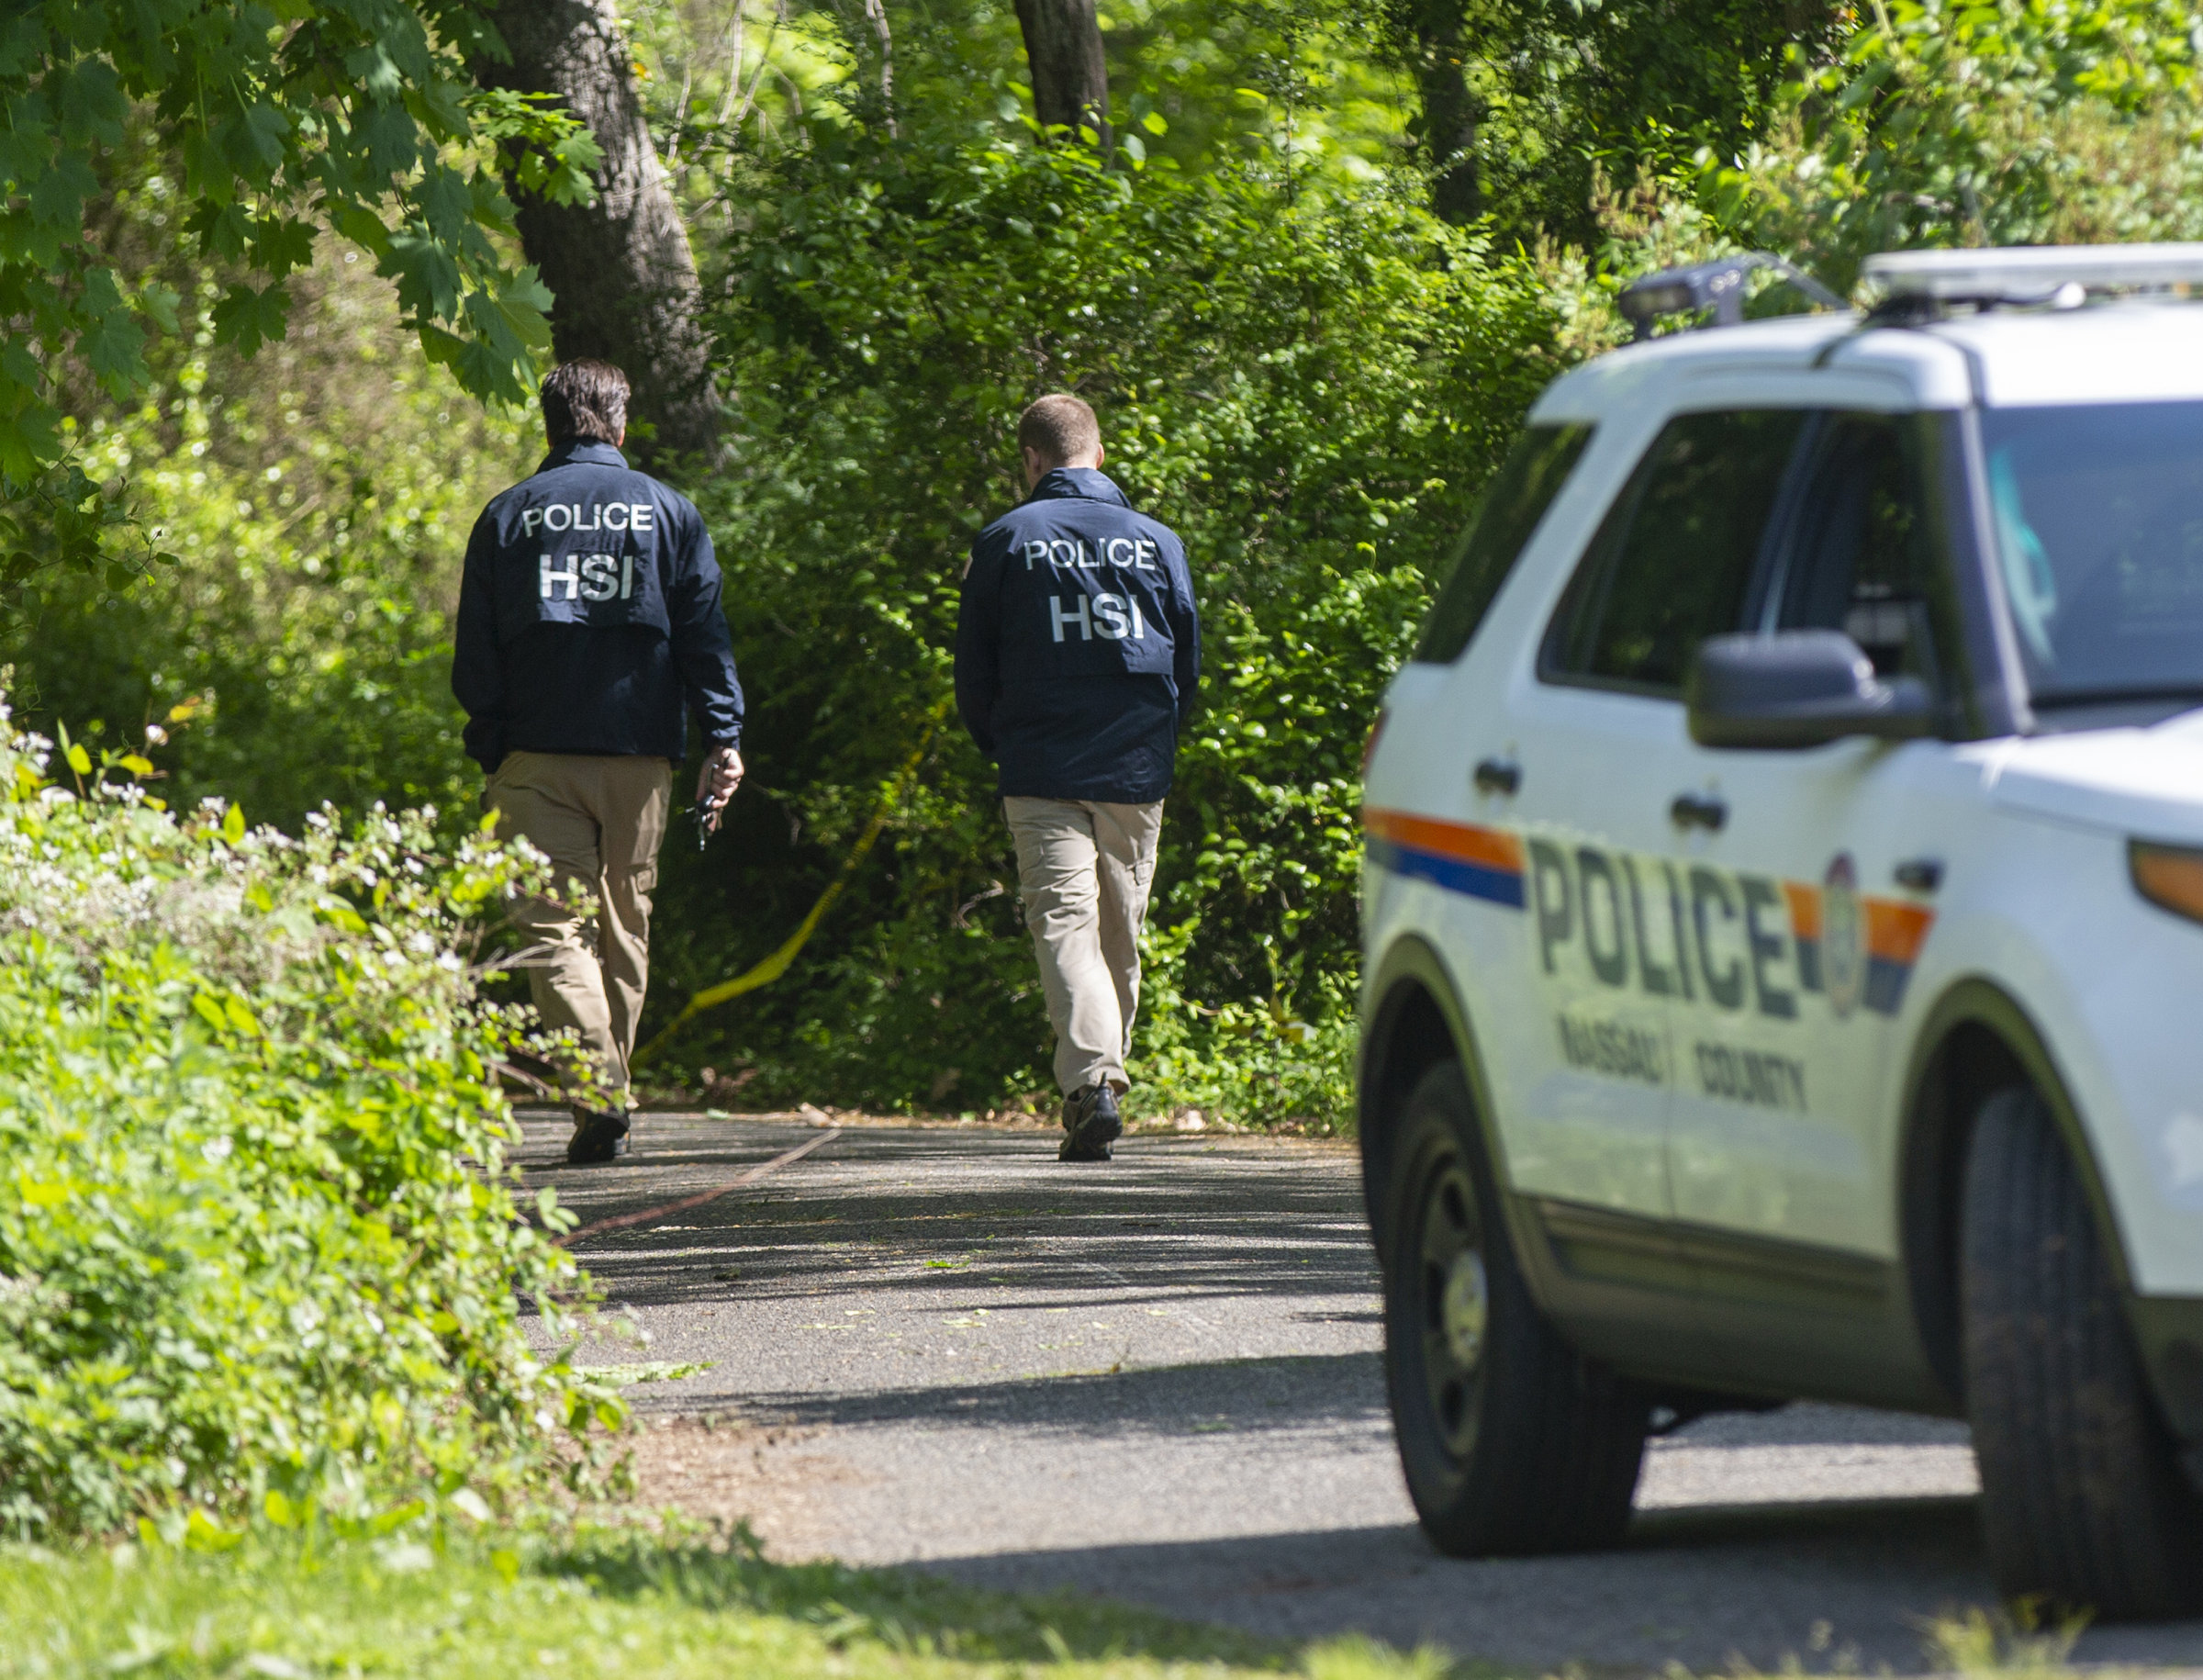 MS-13 blamed for body found in shallow grave in Long Island nature preserve